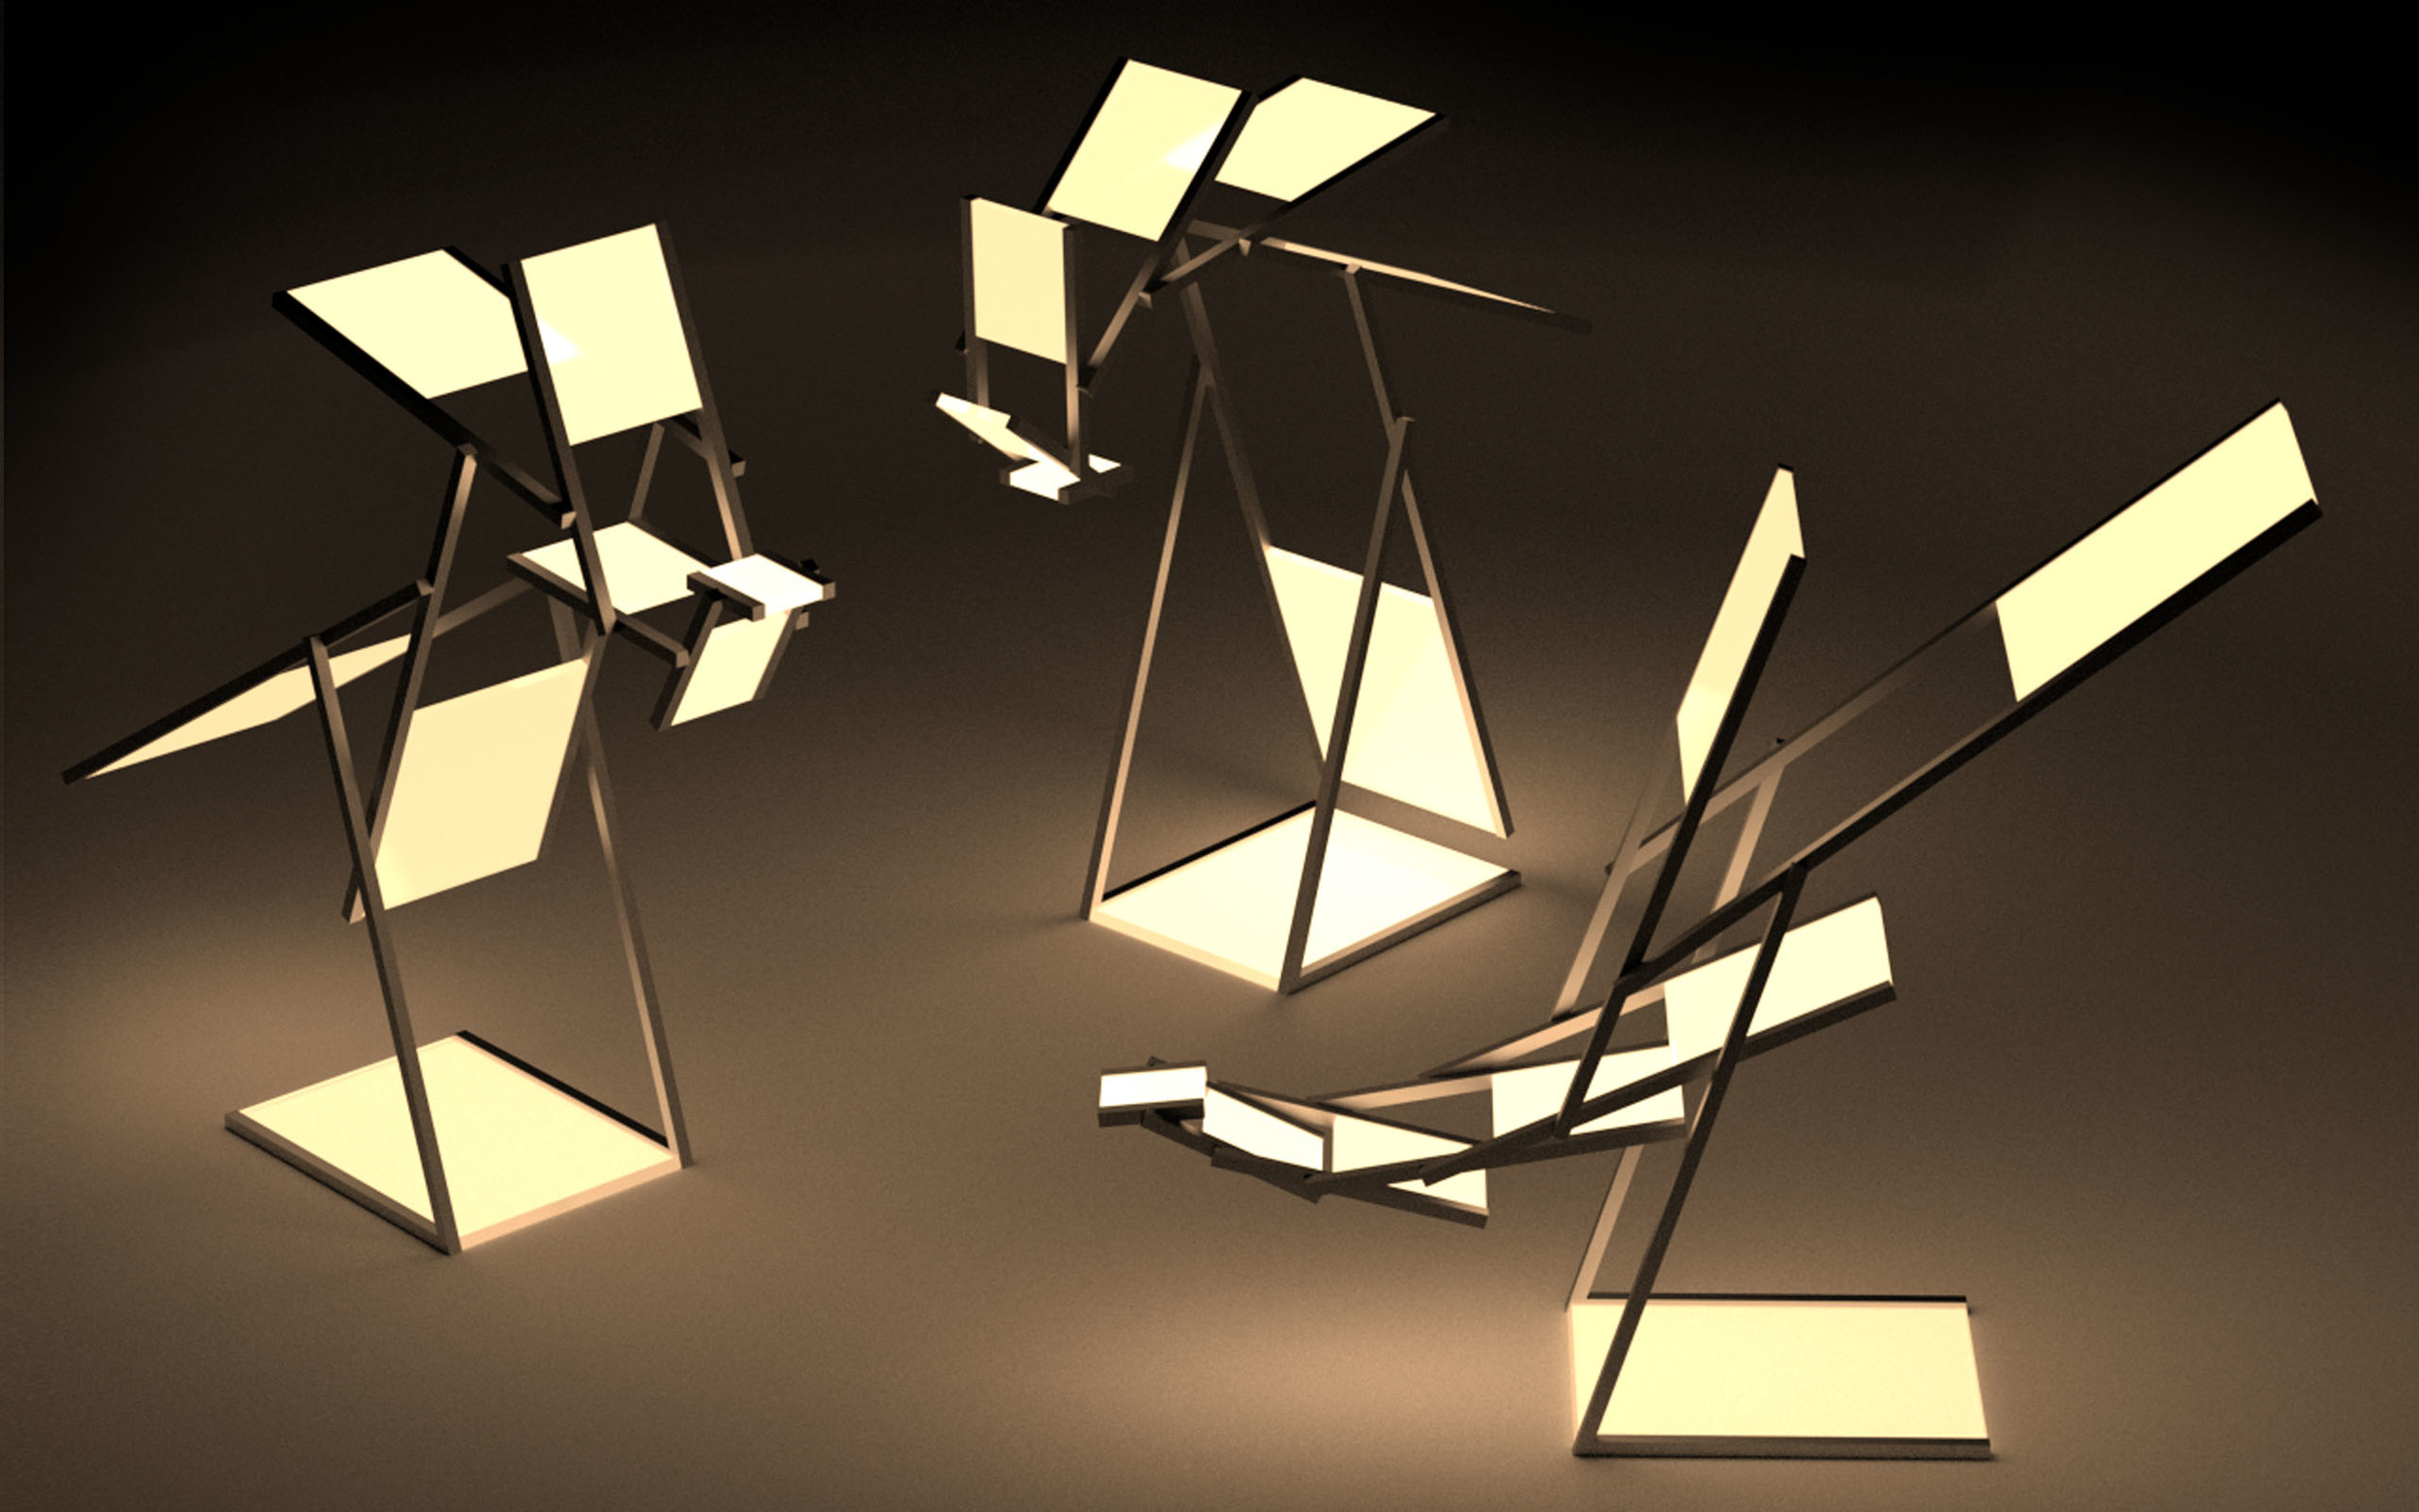 Aequo, the lamp staying in balance